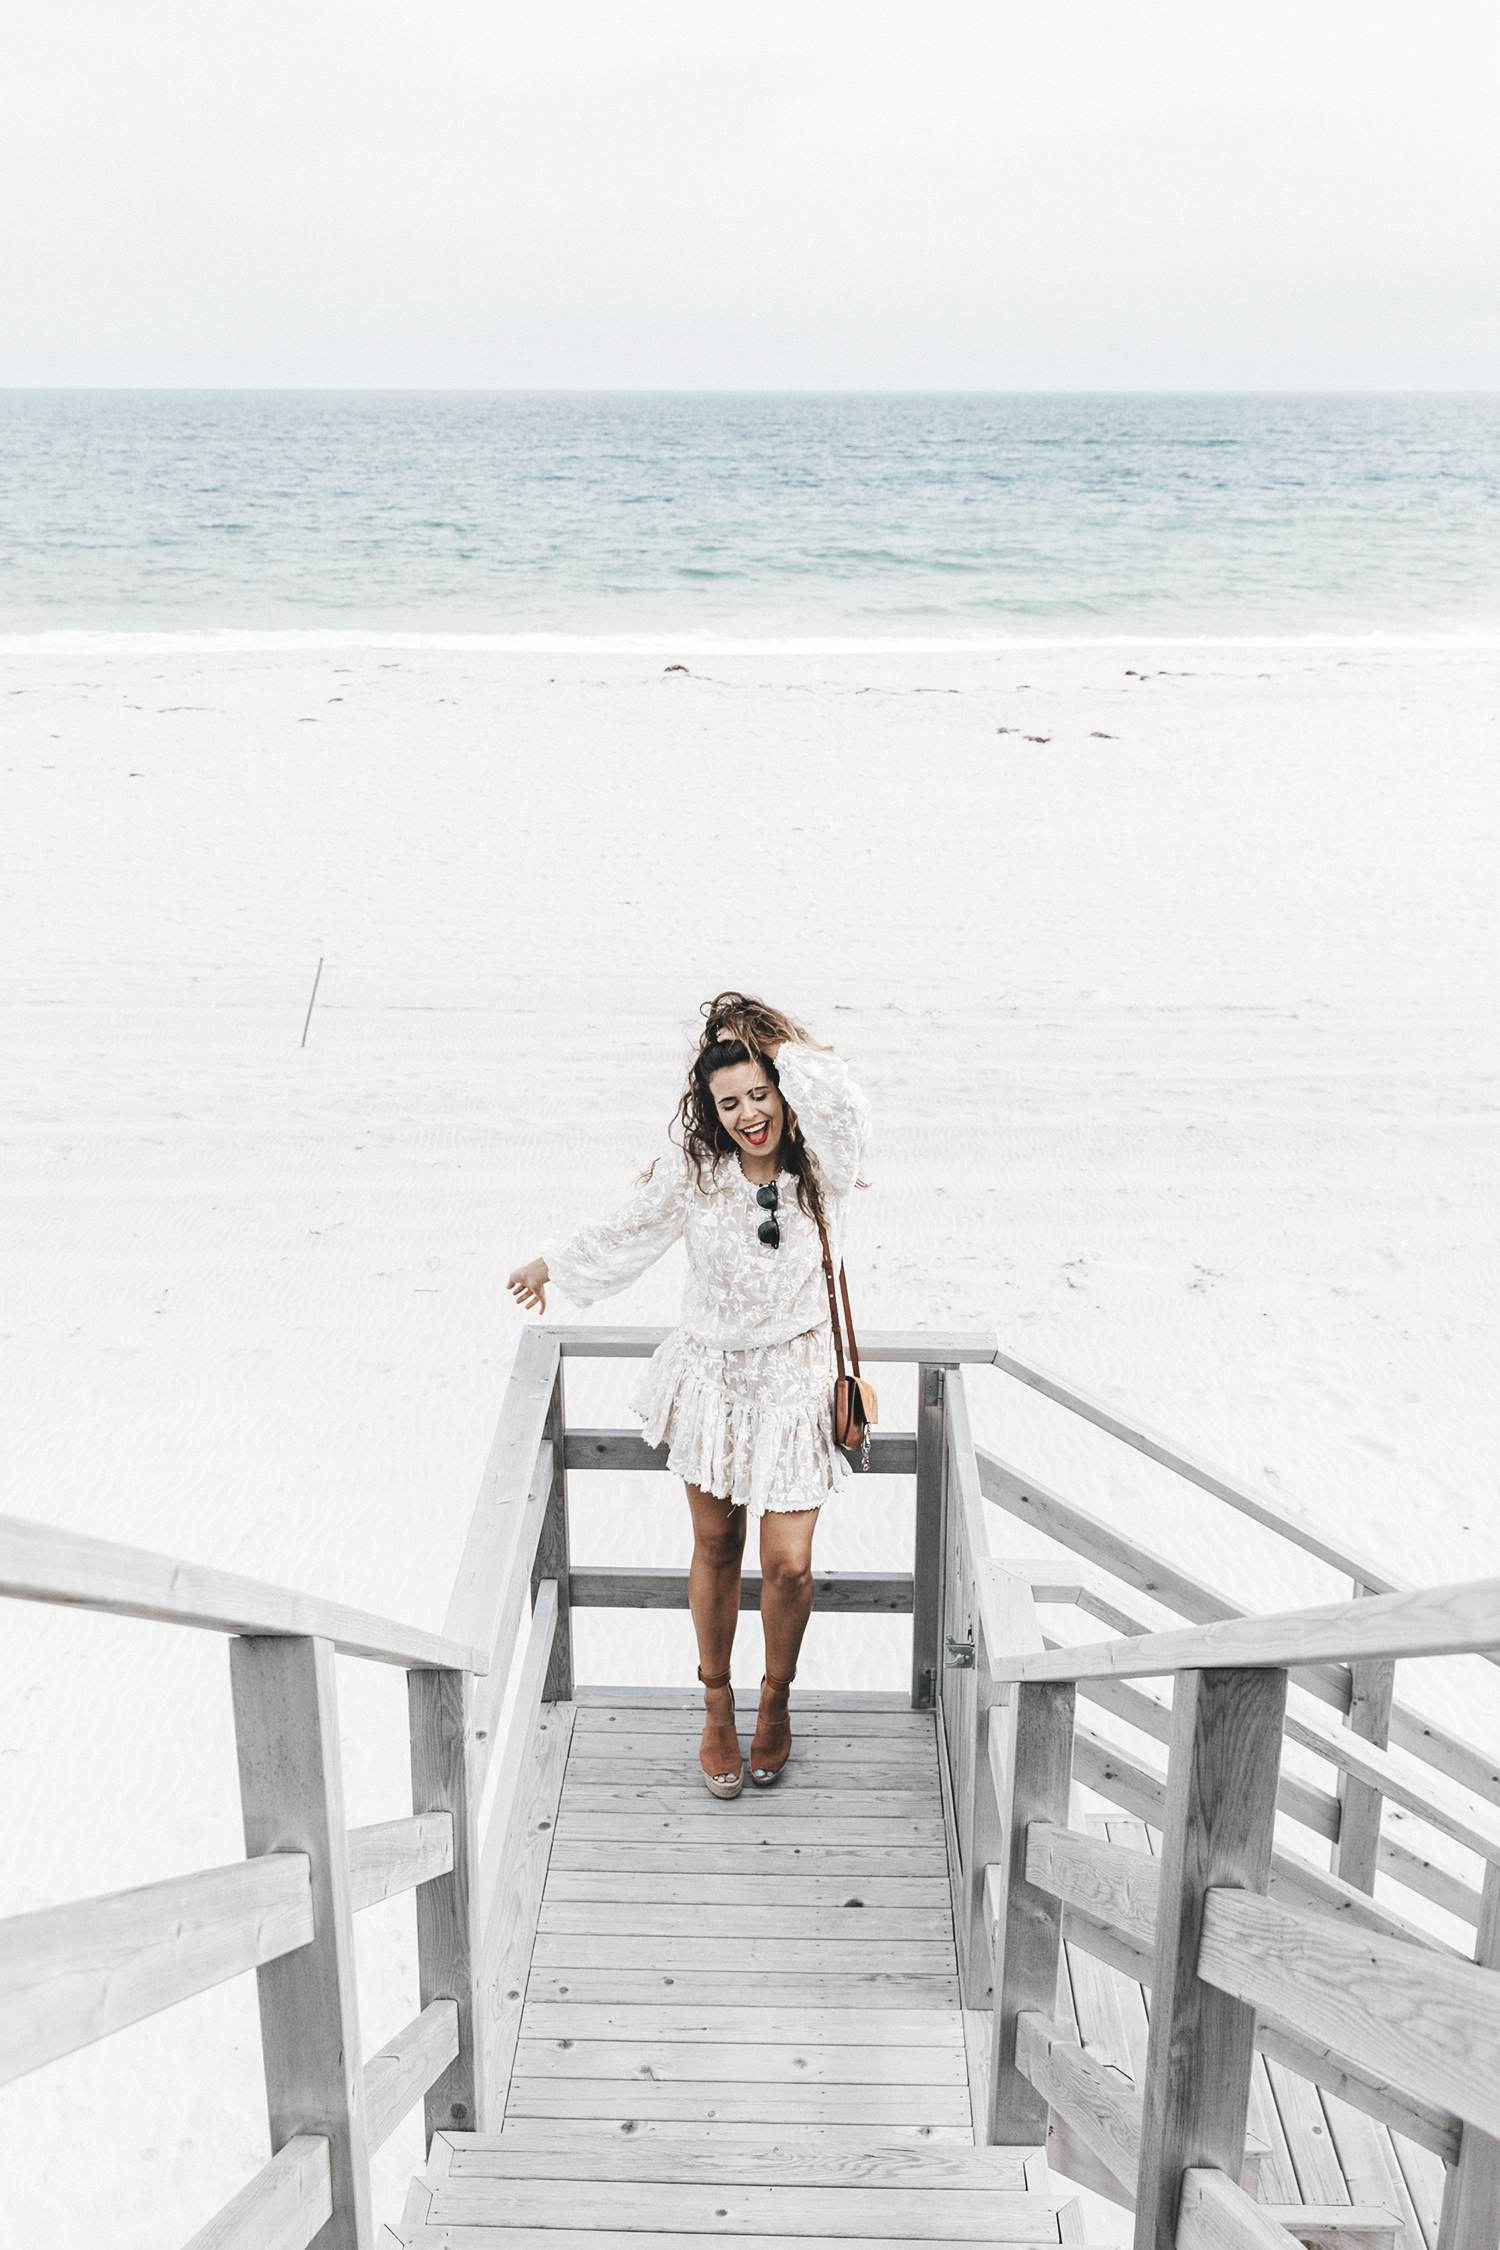 Revolve_in_The_Hamptons-Zimmermann-Embroidered_Dress-WHite_Dress-Chloe_Fay_Bag-Chloe_Wedges-Outfit-213